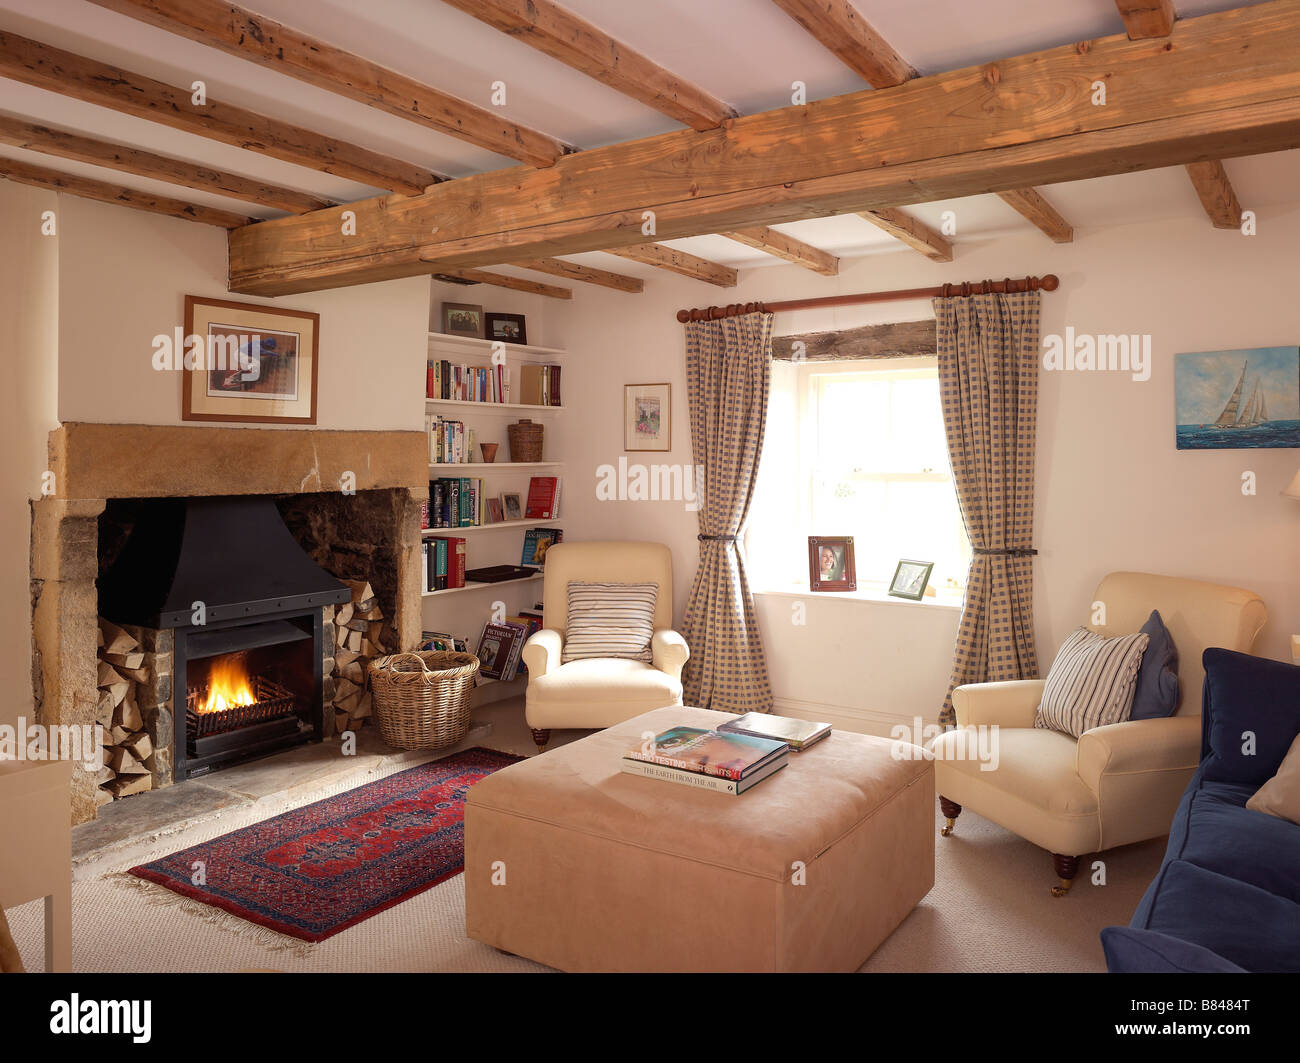 country style living room with lit open fire and cream furniture with stock photo 22221832 alamy. Black Bedroom Furniture Sets. Home Design Ideas